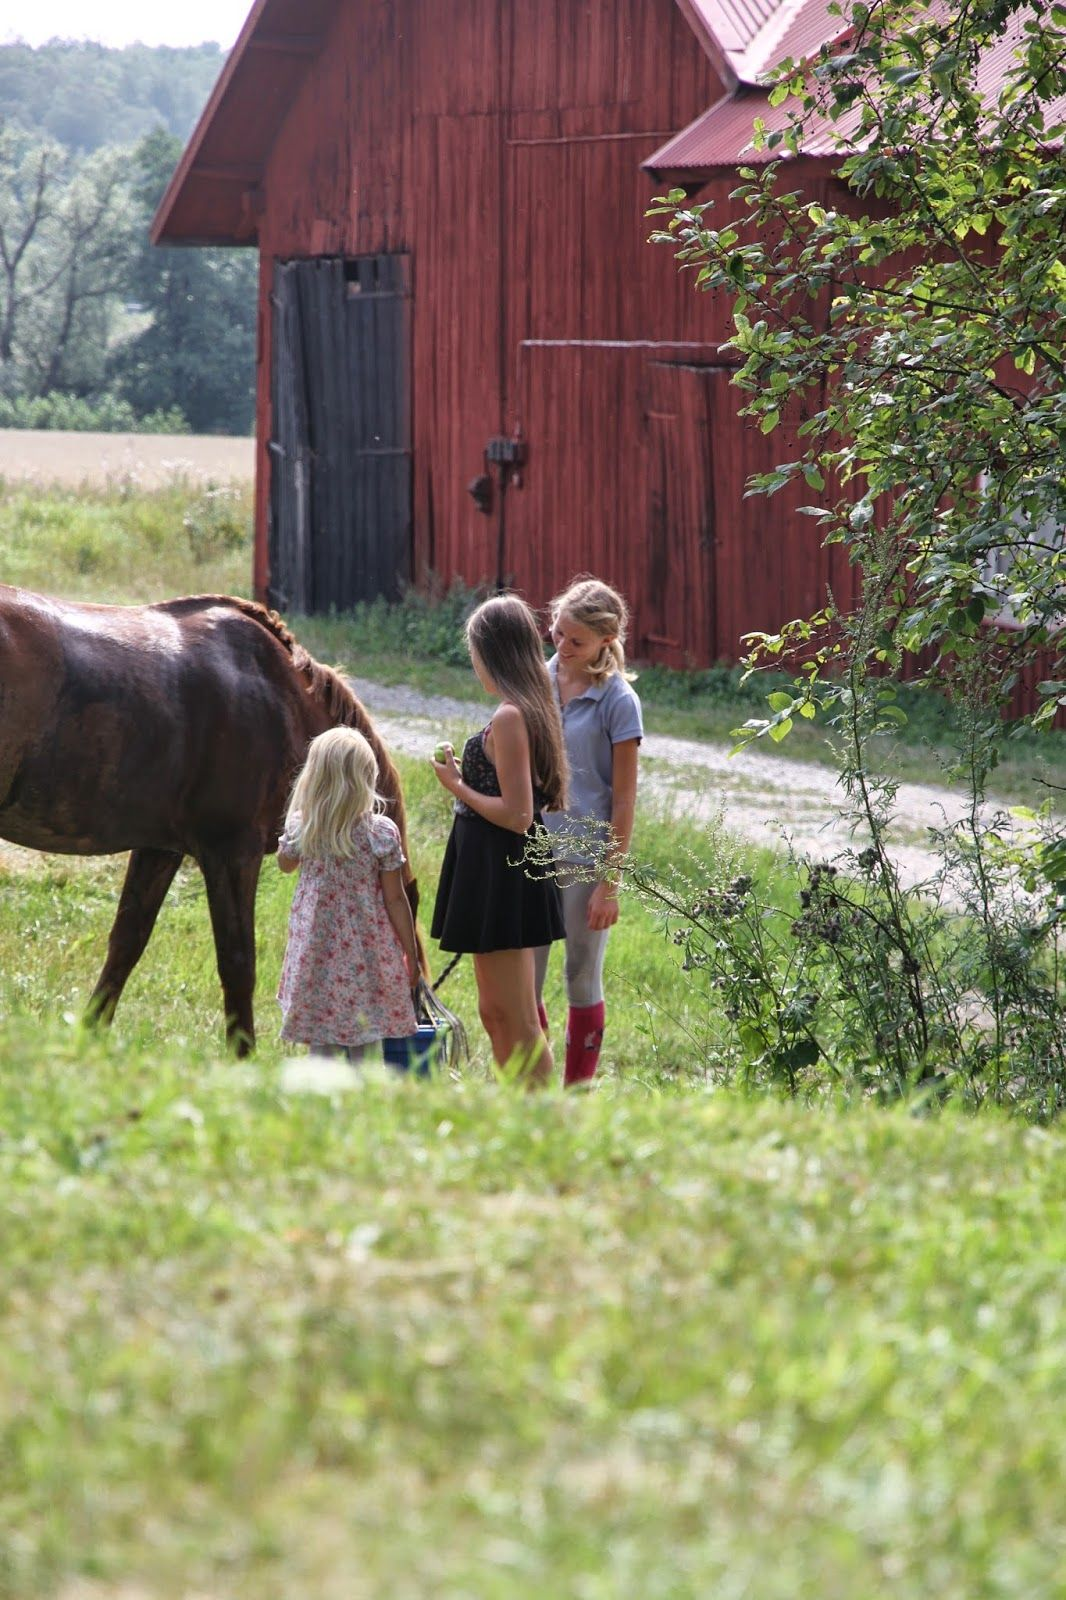 Some children down by the old barn feeding Miss Rose, their parents are on bikes in the area.